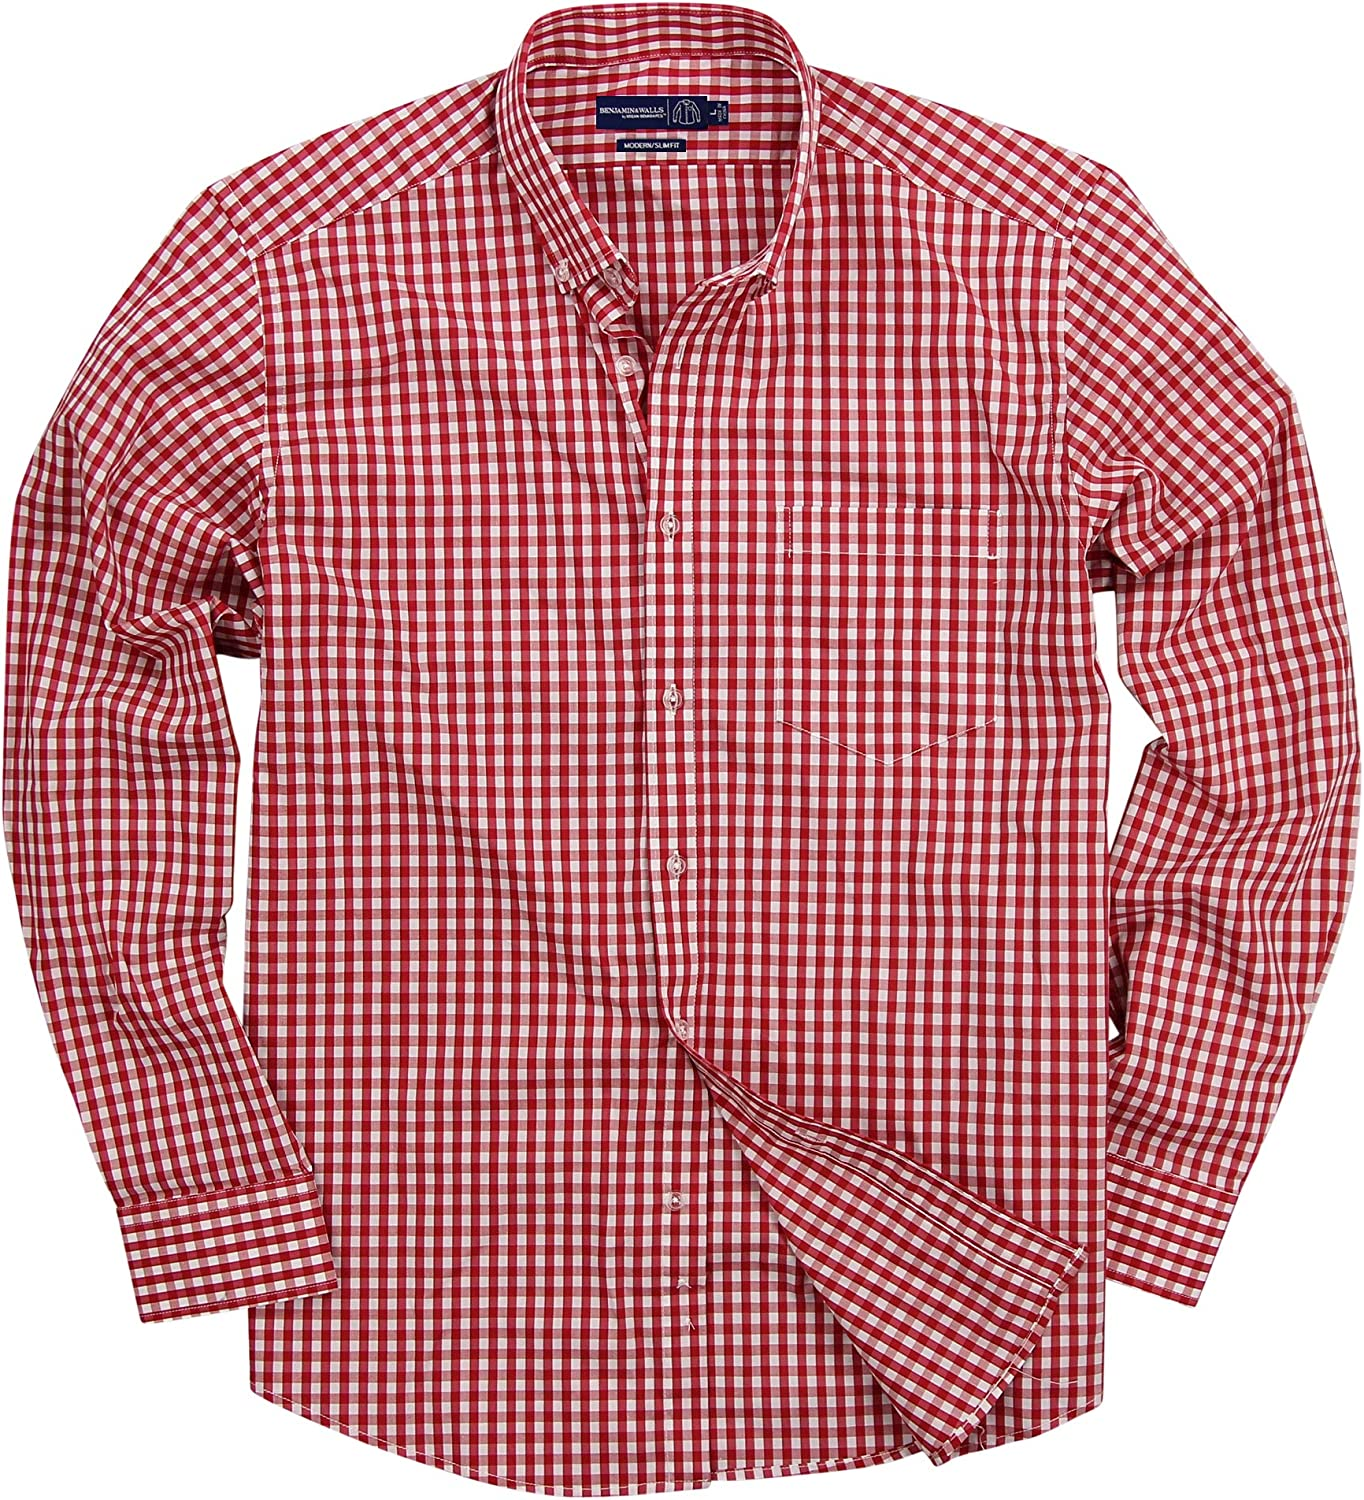 Men's Stretch Fit Gingham Plaid Long Sleeve Max 68% OFF Button Ranking TOP10 Shirt Down